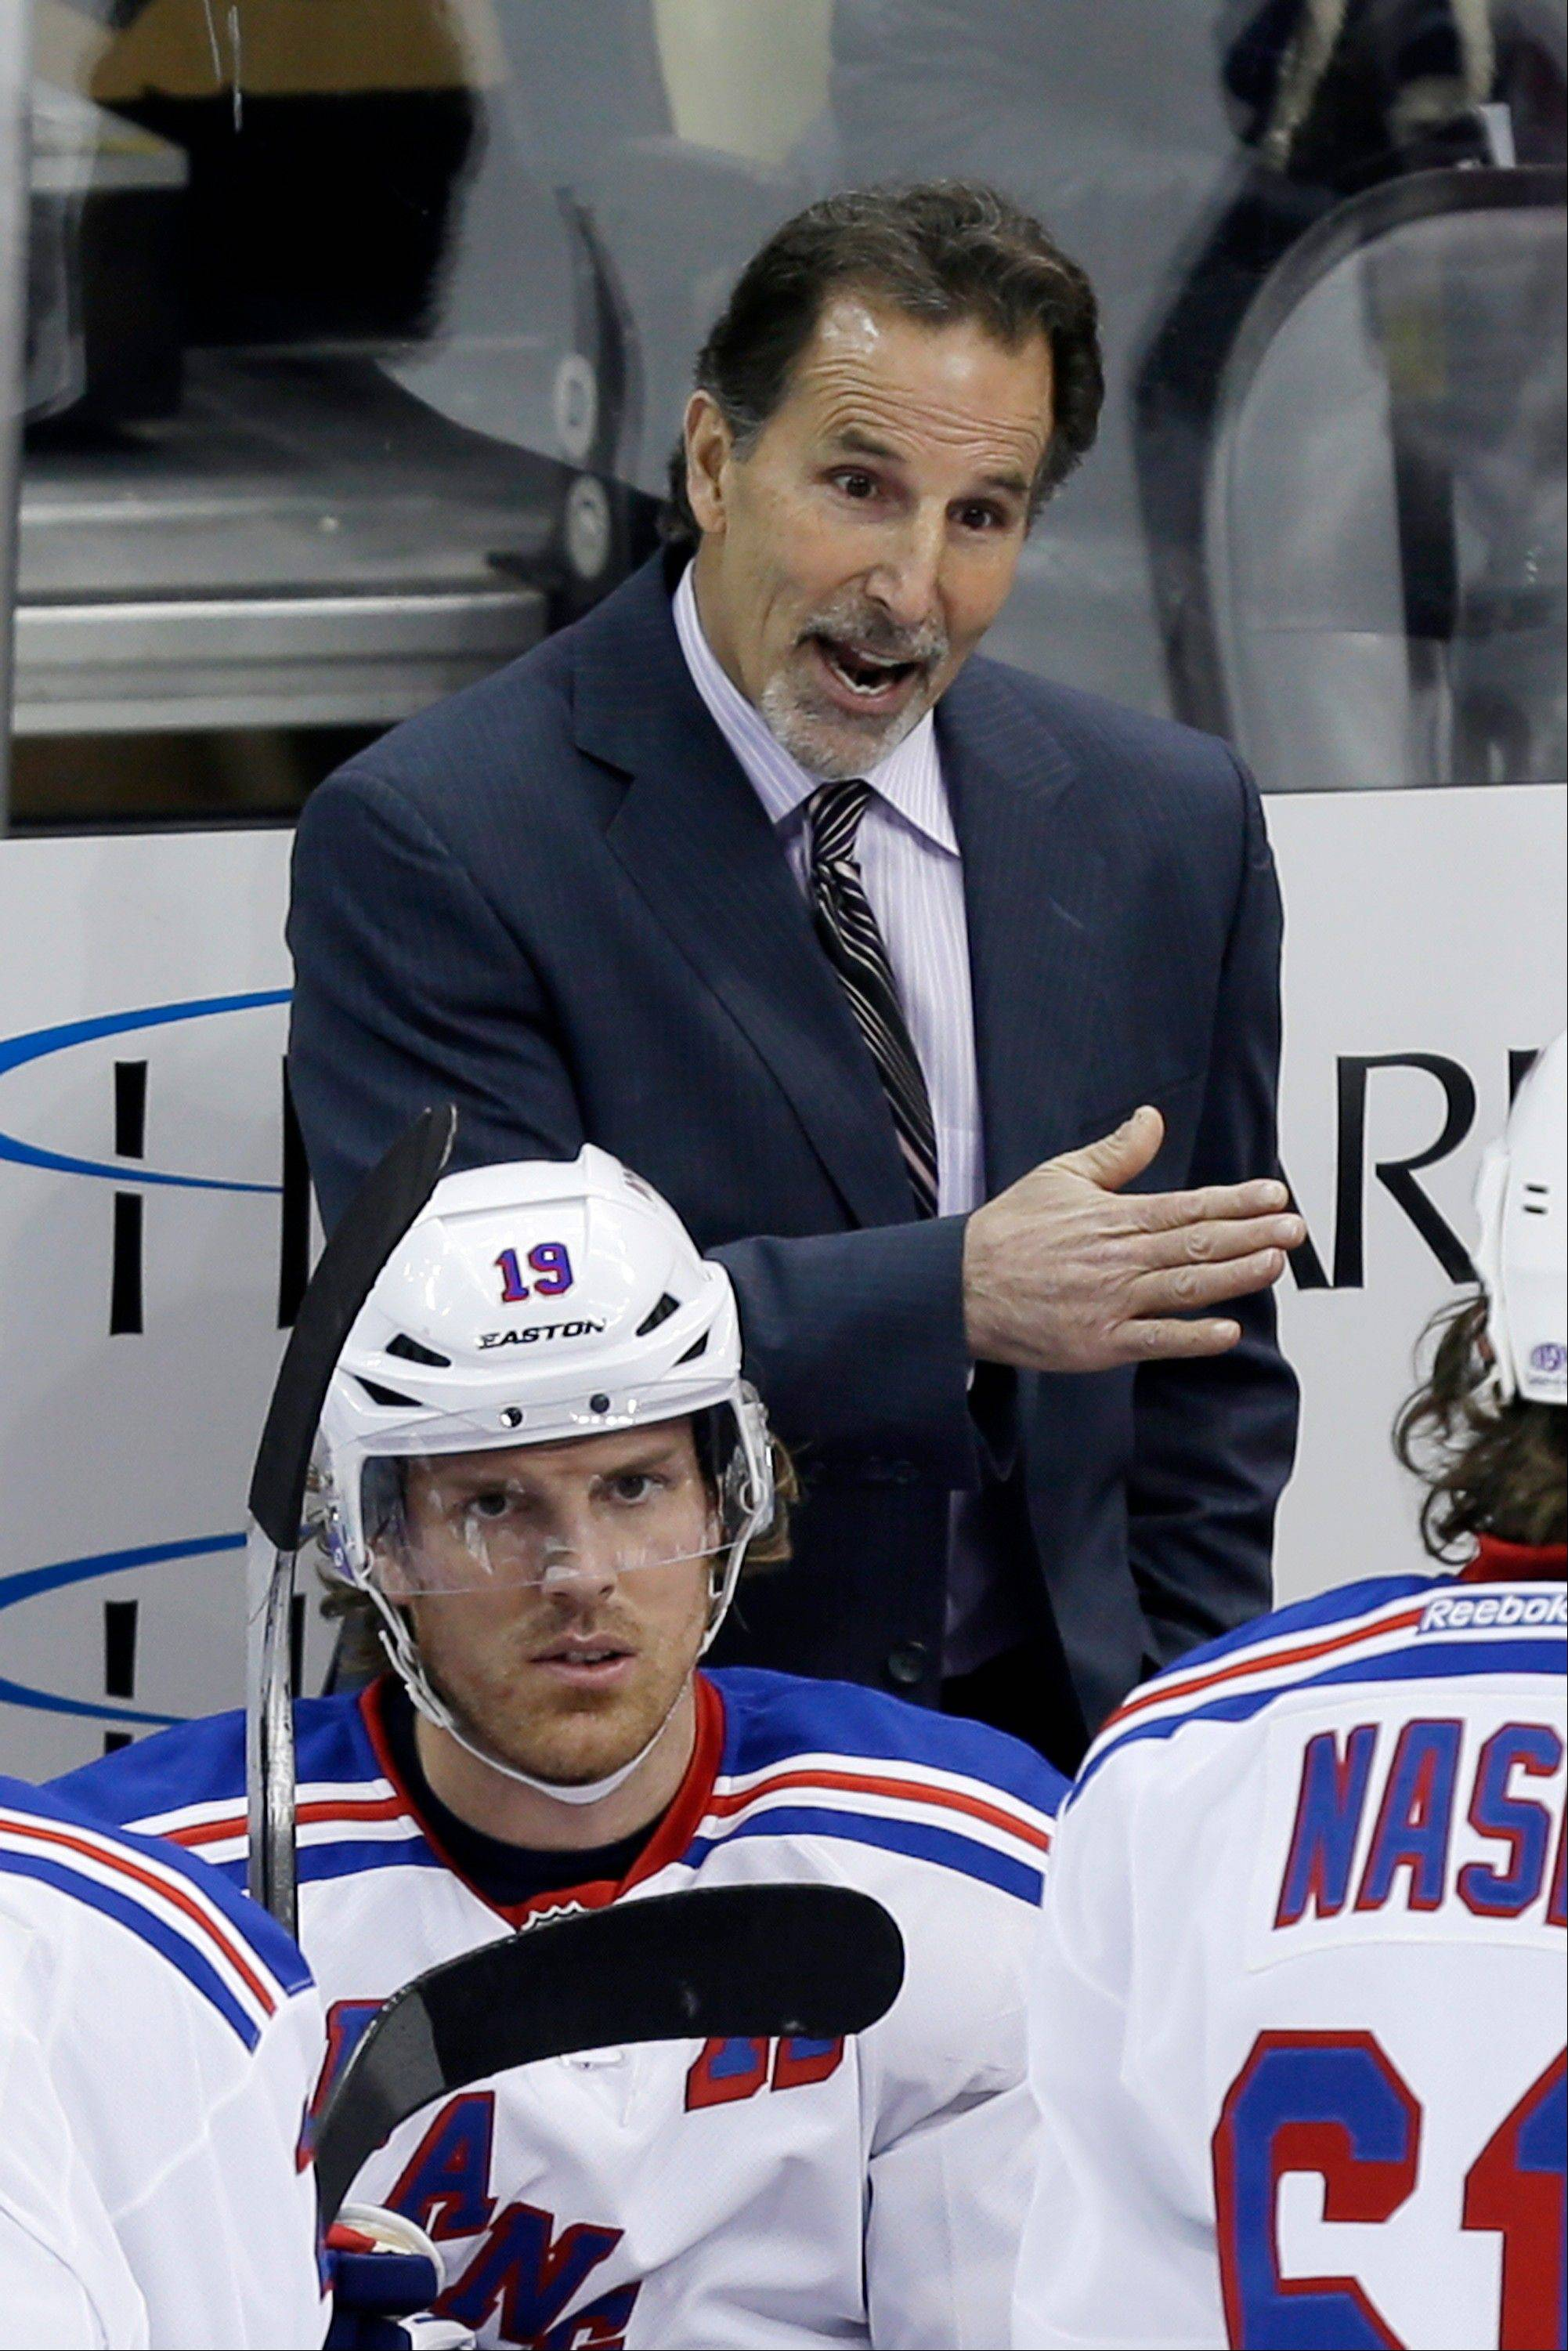 FILE - In this April 5, 2013 file photo, New York Rangers head coach John Tortorella stands behind his bench during an NHL hockey game against the Pittsburgh Penguins in Pittsburgh. The Rangers have fired coach Tortorella, Wednesday, May 29, 2013, four days after New York was eliminated from the Stanley Cup playoffs. (AP Photo/Gene J. Puskar, File)